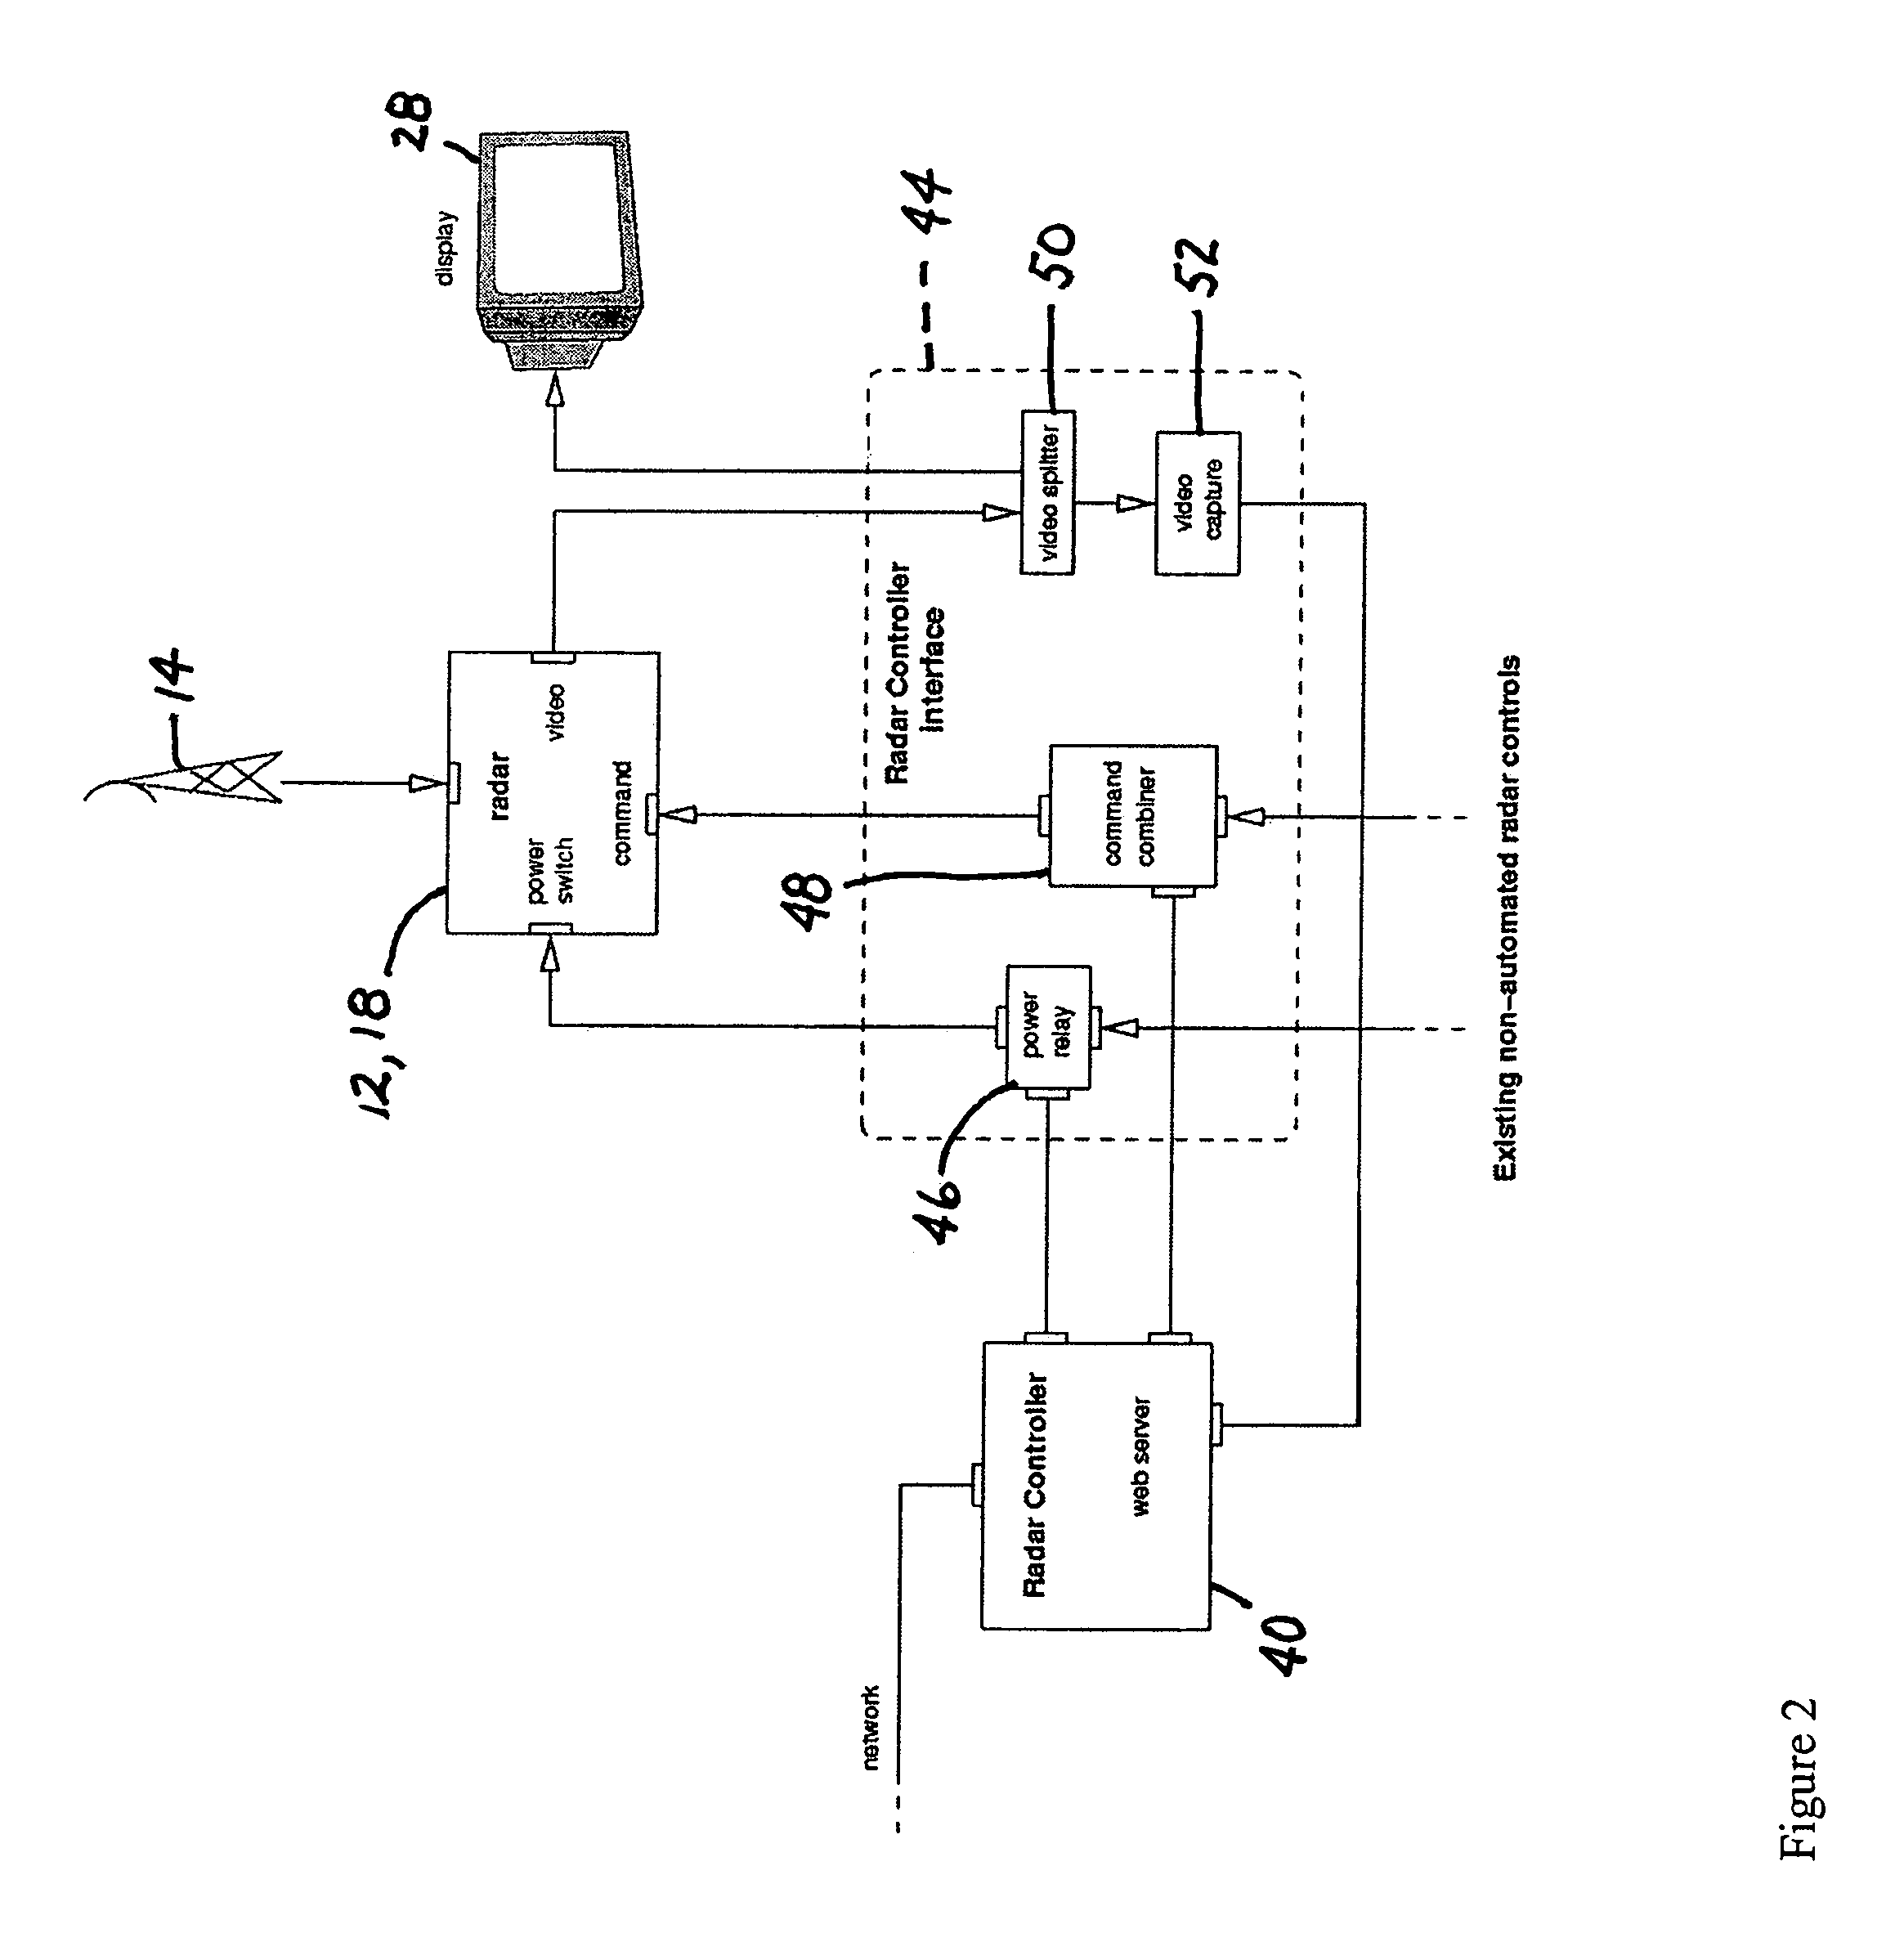 patent us7940206 low cost high performance radar networks patent drawing